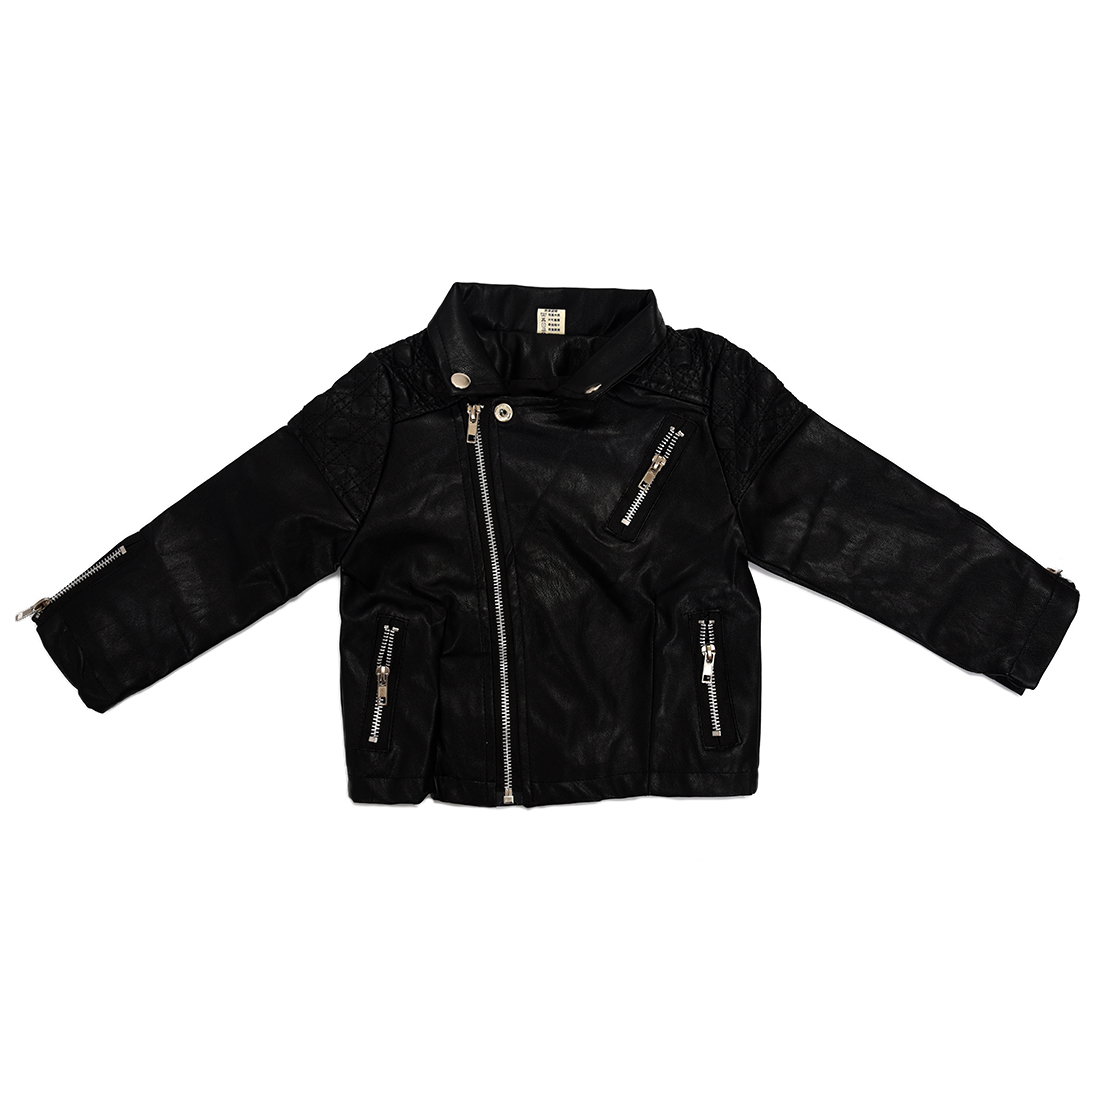 Leather jackets for kids - Autumn Girls Fashion Style Girl Pu Jacket Children Leather Coats For Girl Outerwear Kids Girl Black 7t